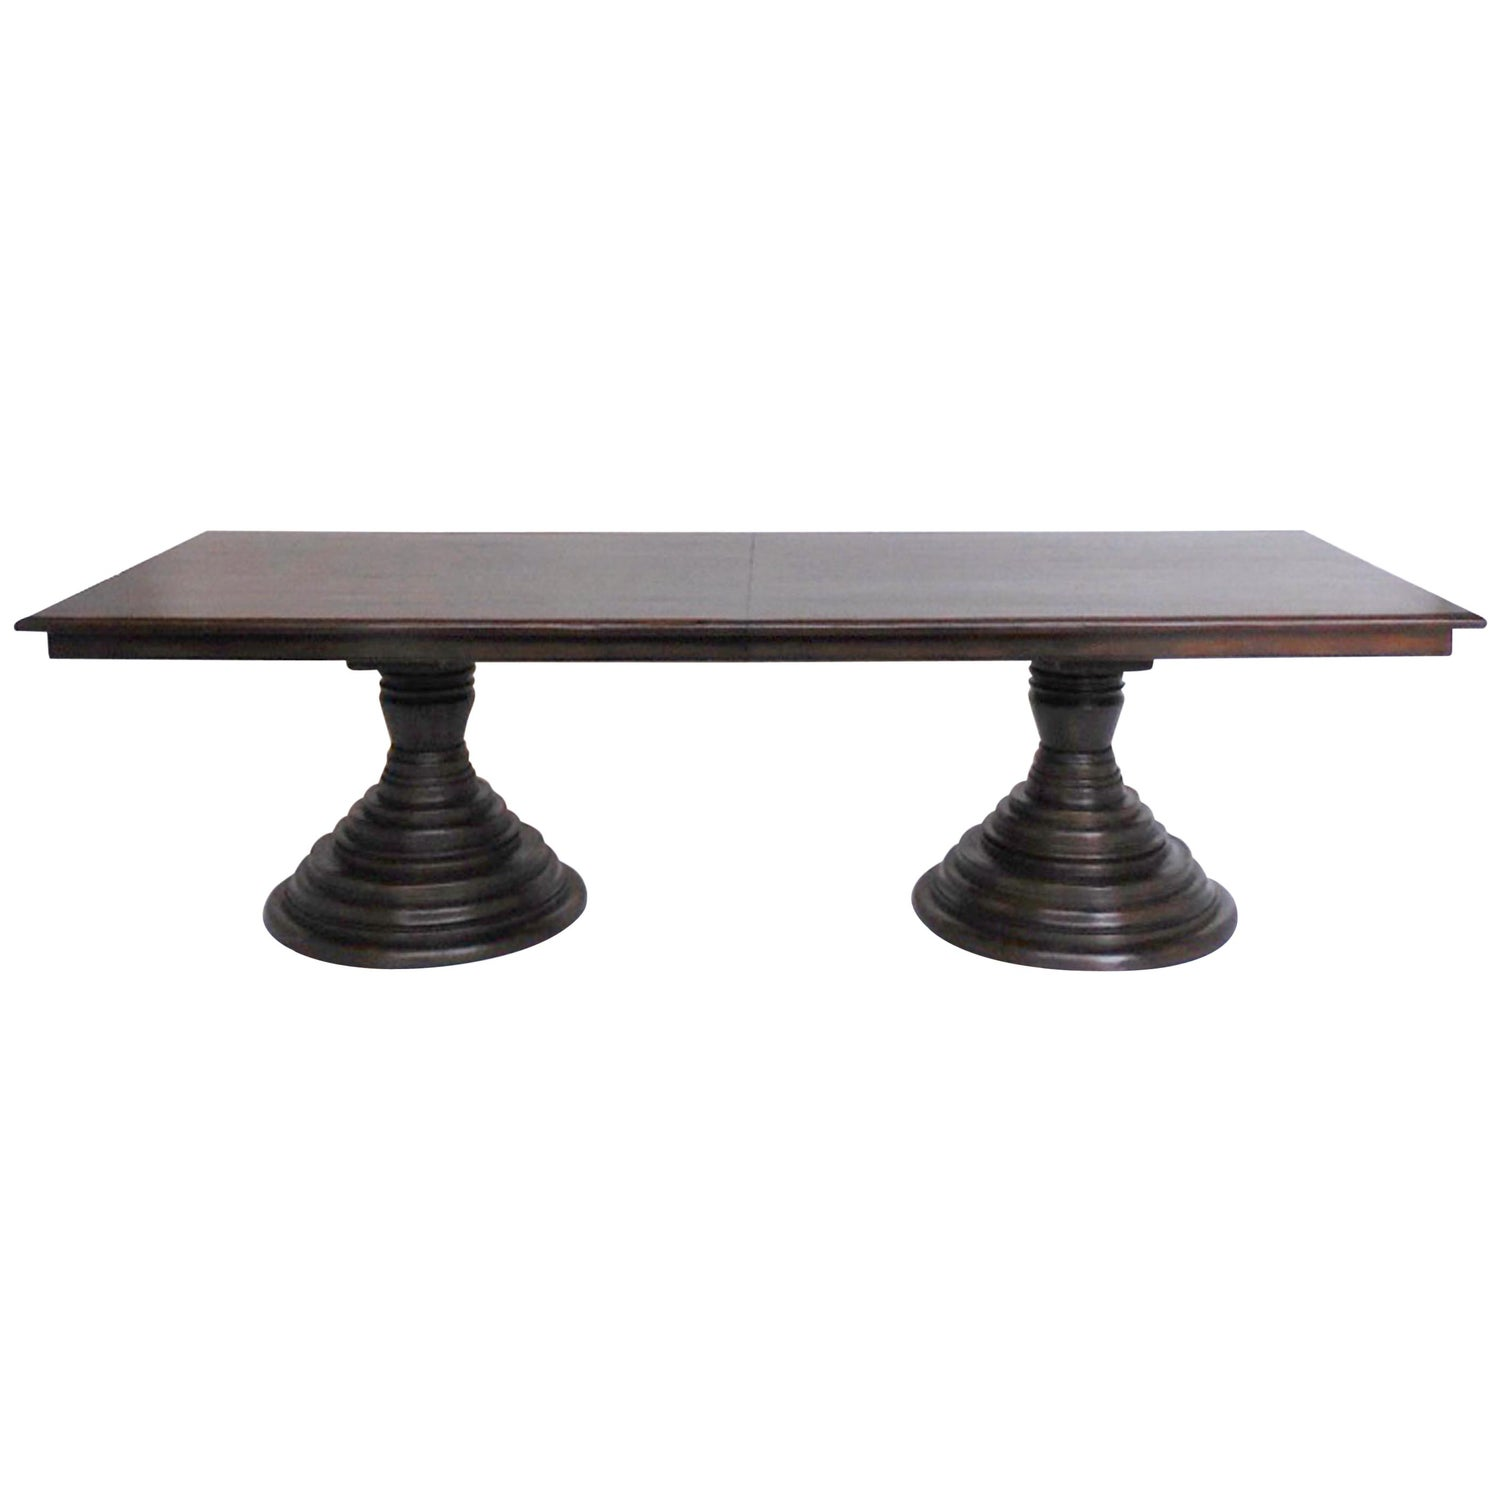 Custom Double Pedestal Dining Table For Sale At 1stdibs